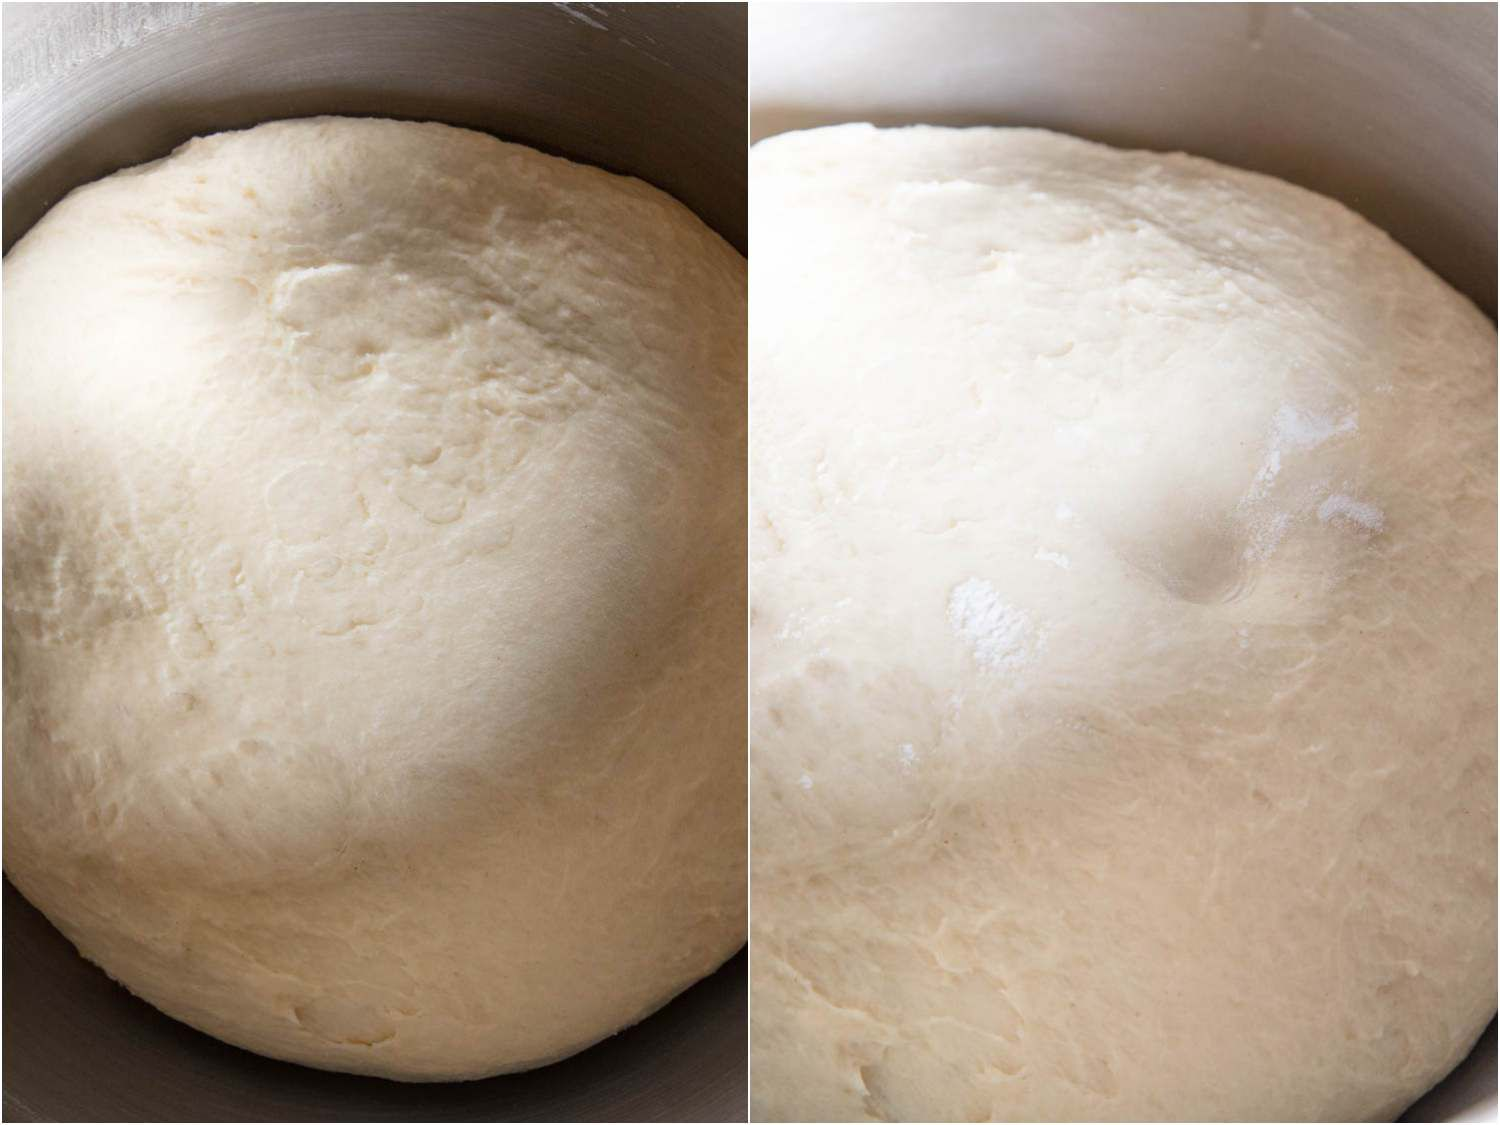 Photo collage showing unrisen cinnamon roll dough (left) and fully proofed cinnamon roll dough (right).